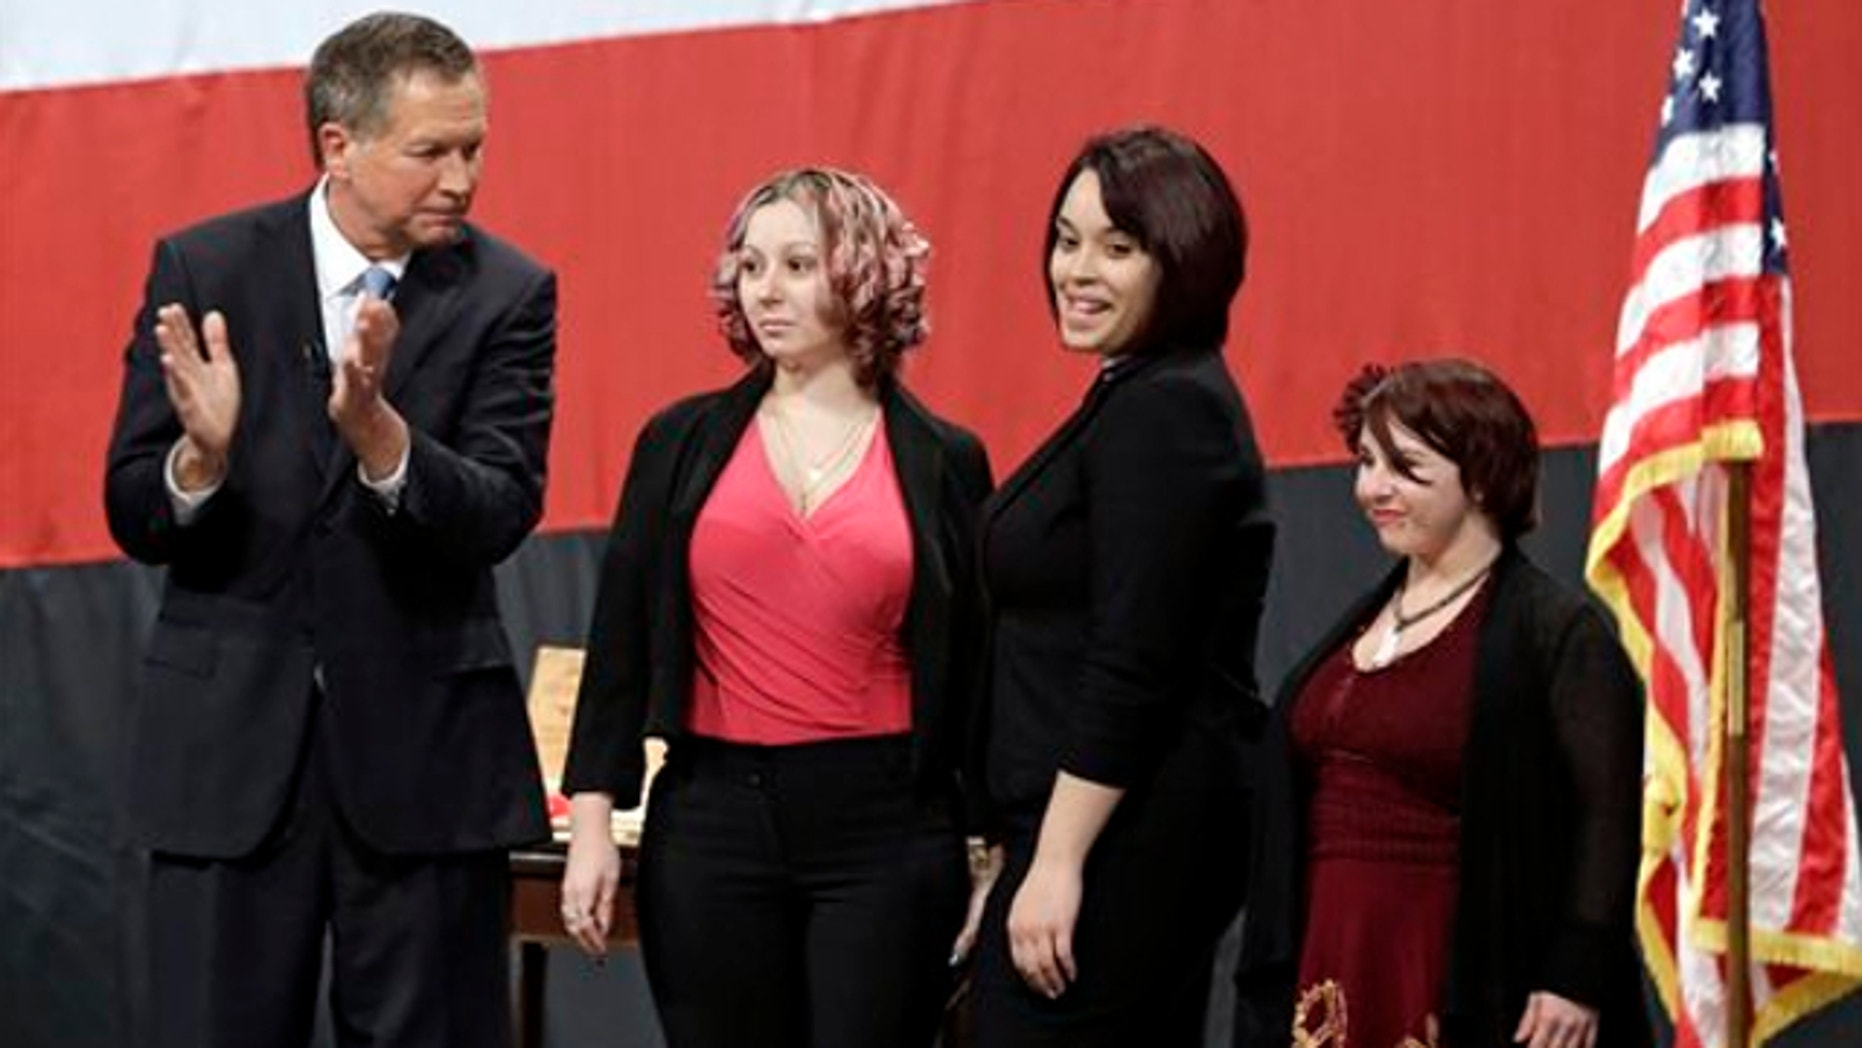 Feb. 24, 2014: Ohio Gov. John Kasich, from left, introduces Amanda Berry, Gina DeJesus and Michelle Knight during his State of the State address at the Performing Arts Center in Medina, Ohio.